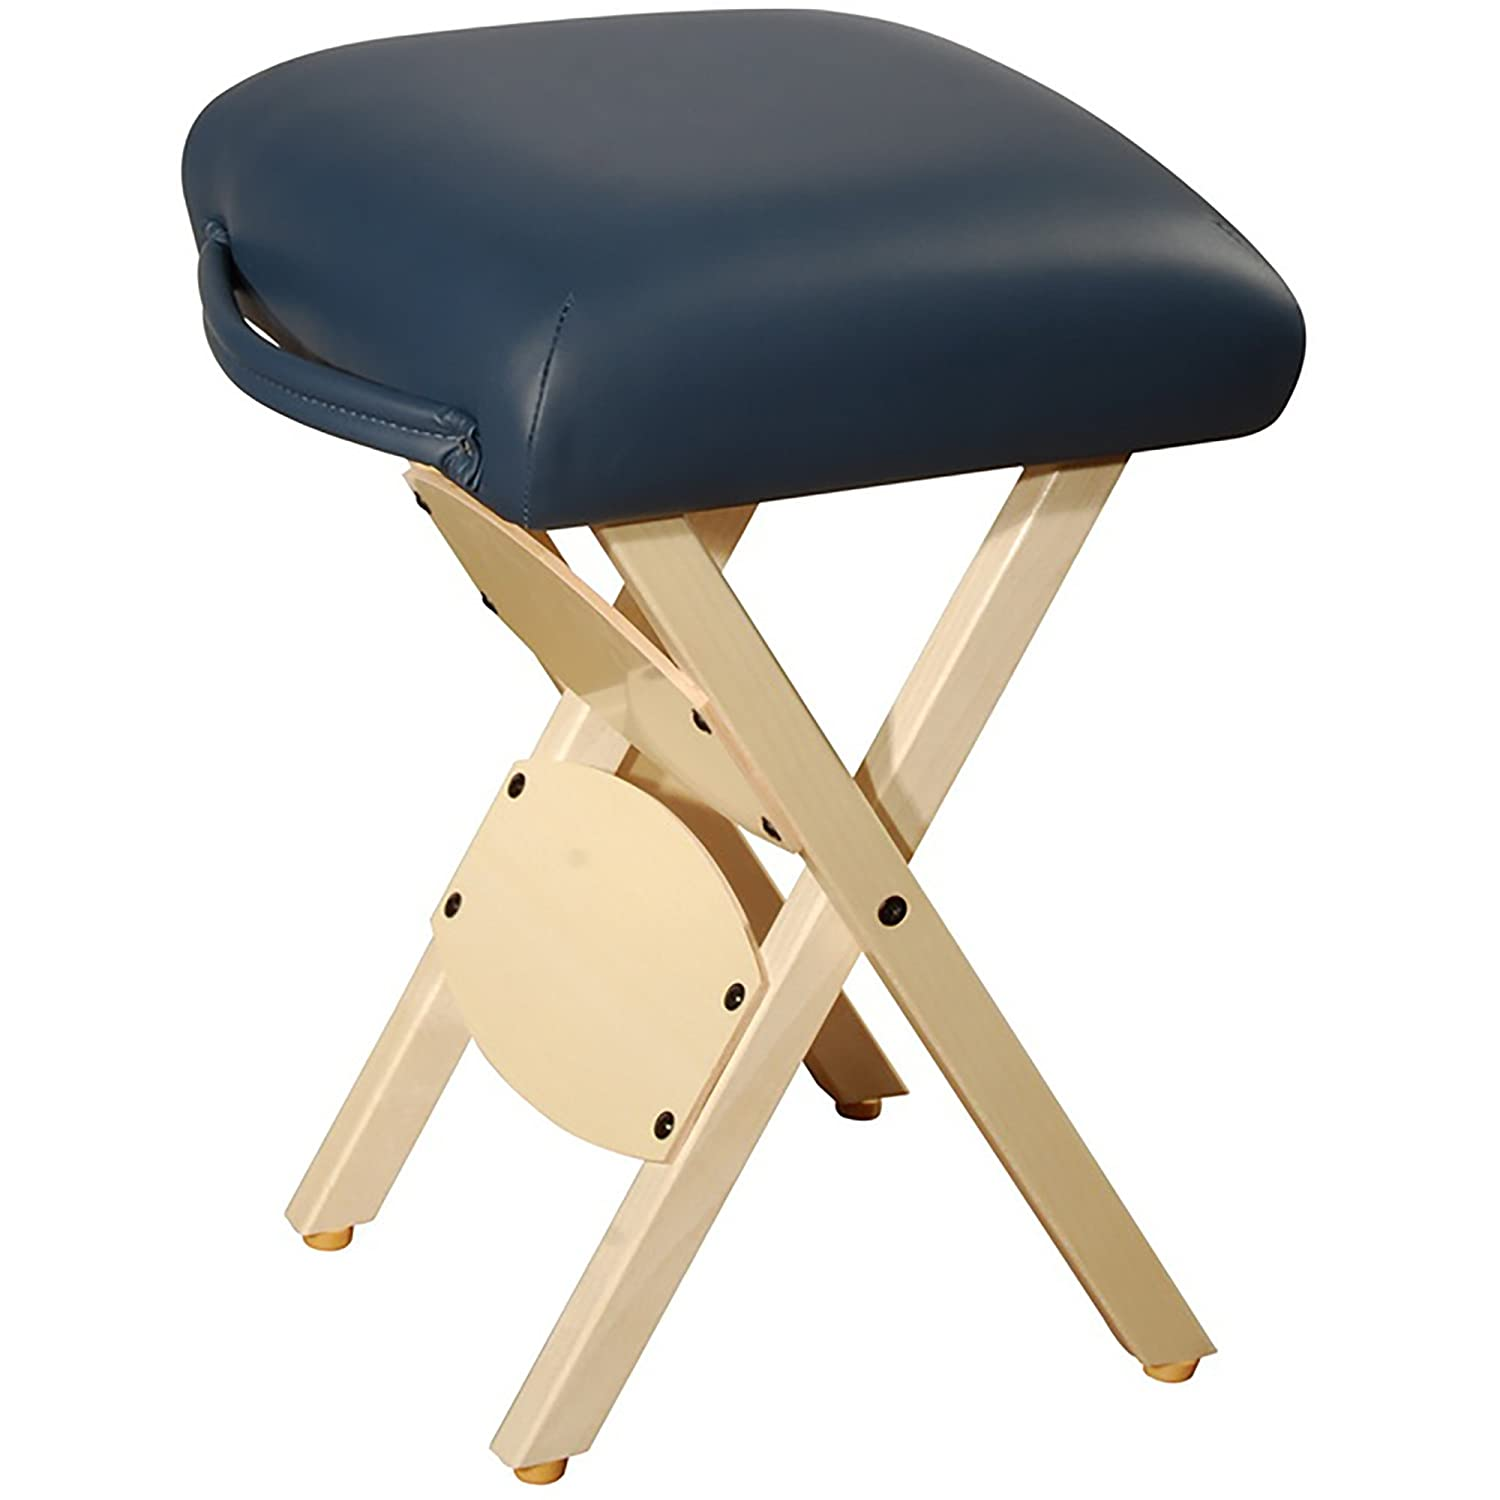 Mt Massage Wooden Folding Massage Stool, Agate Blue Master Home Products LTD. (DROPSHIP) AX-AY-ABHI-73603